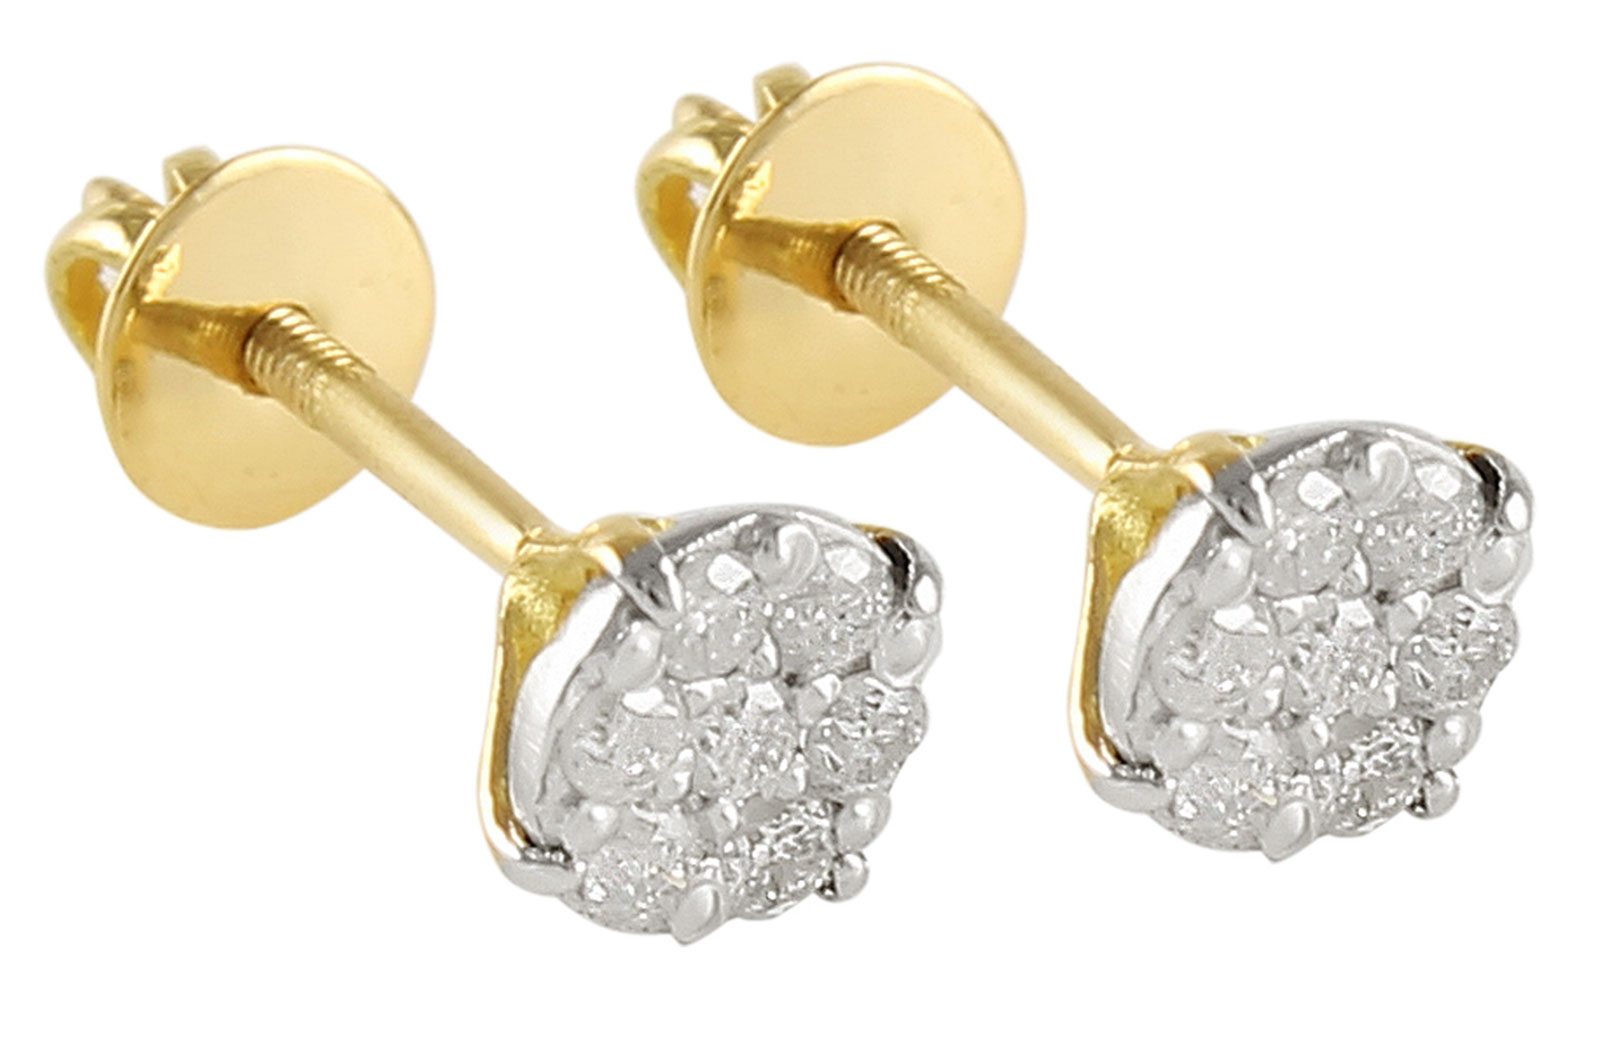 Vera Perla 10k Solid Gold and 0.14cts Genuine Diamonds Solitaire Screw Back Earrings